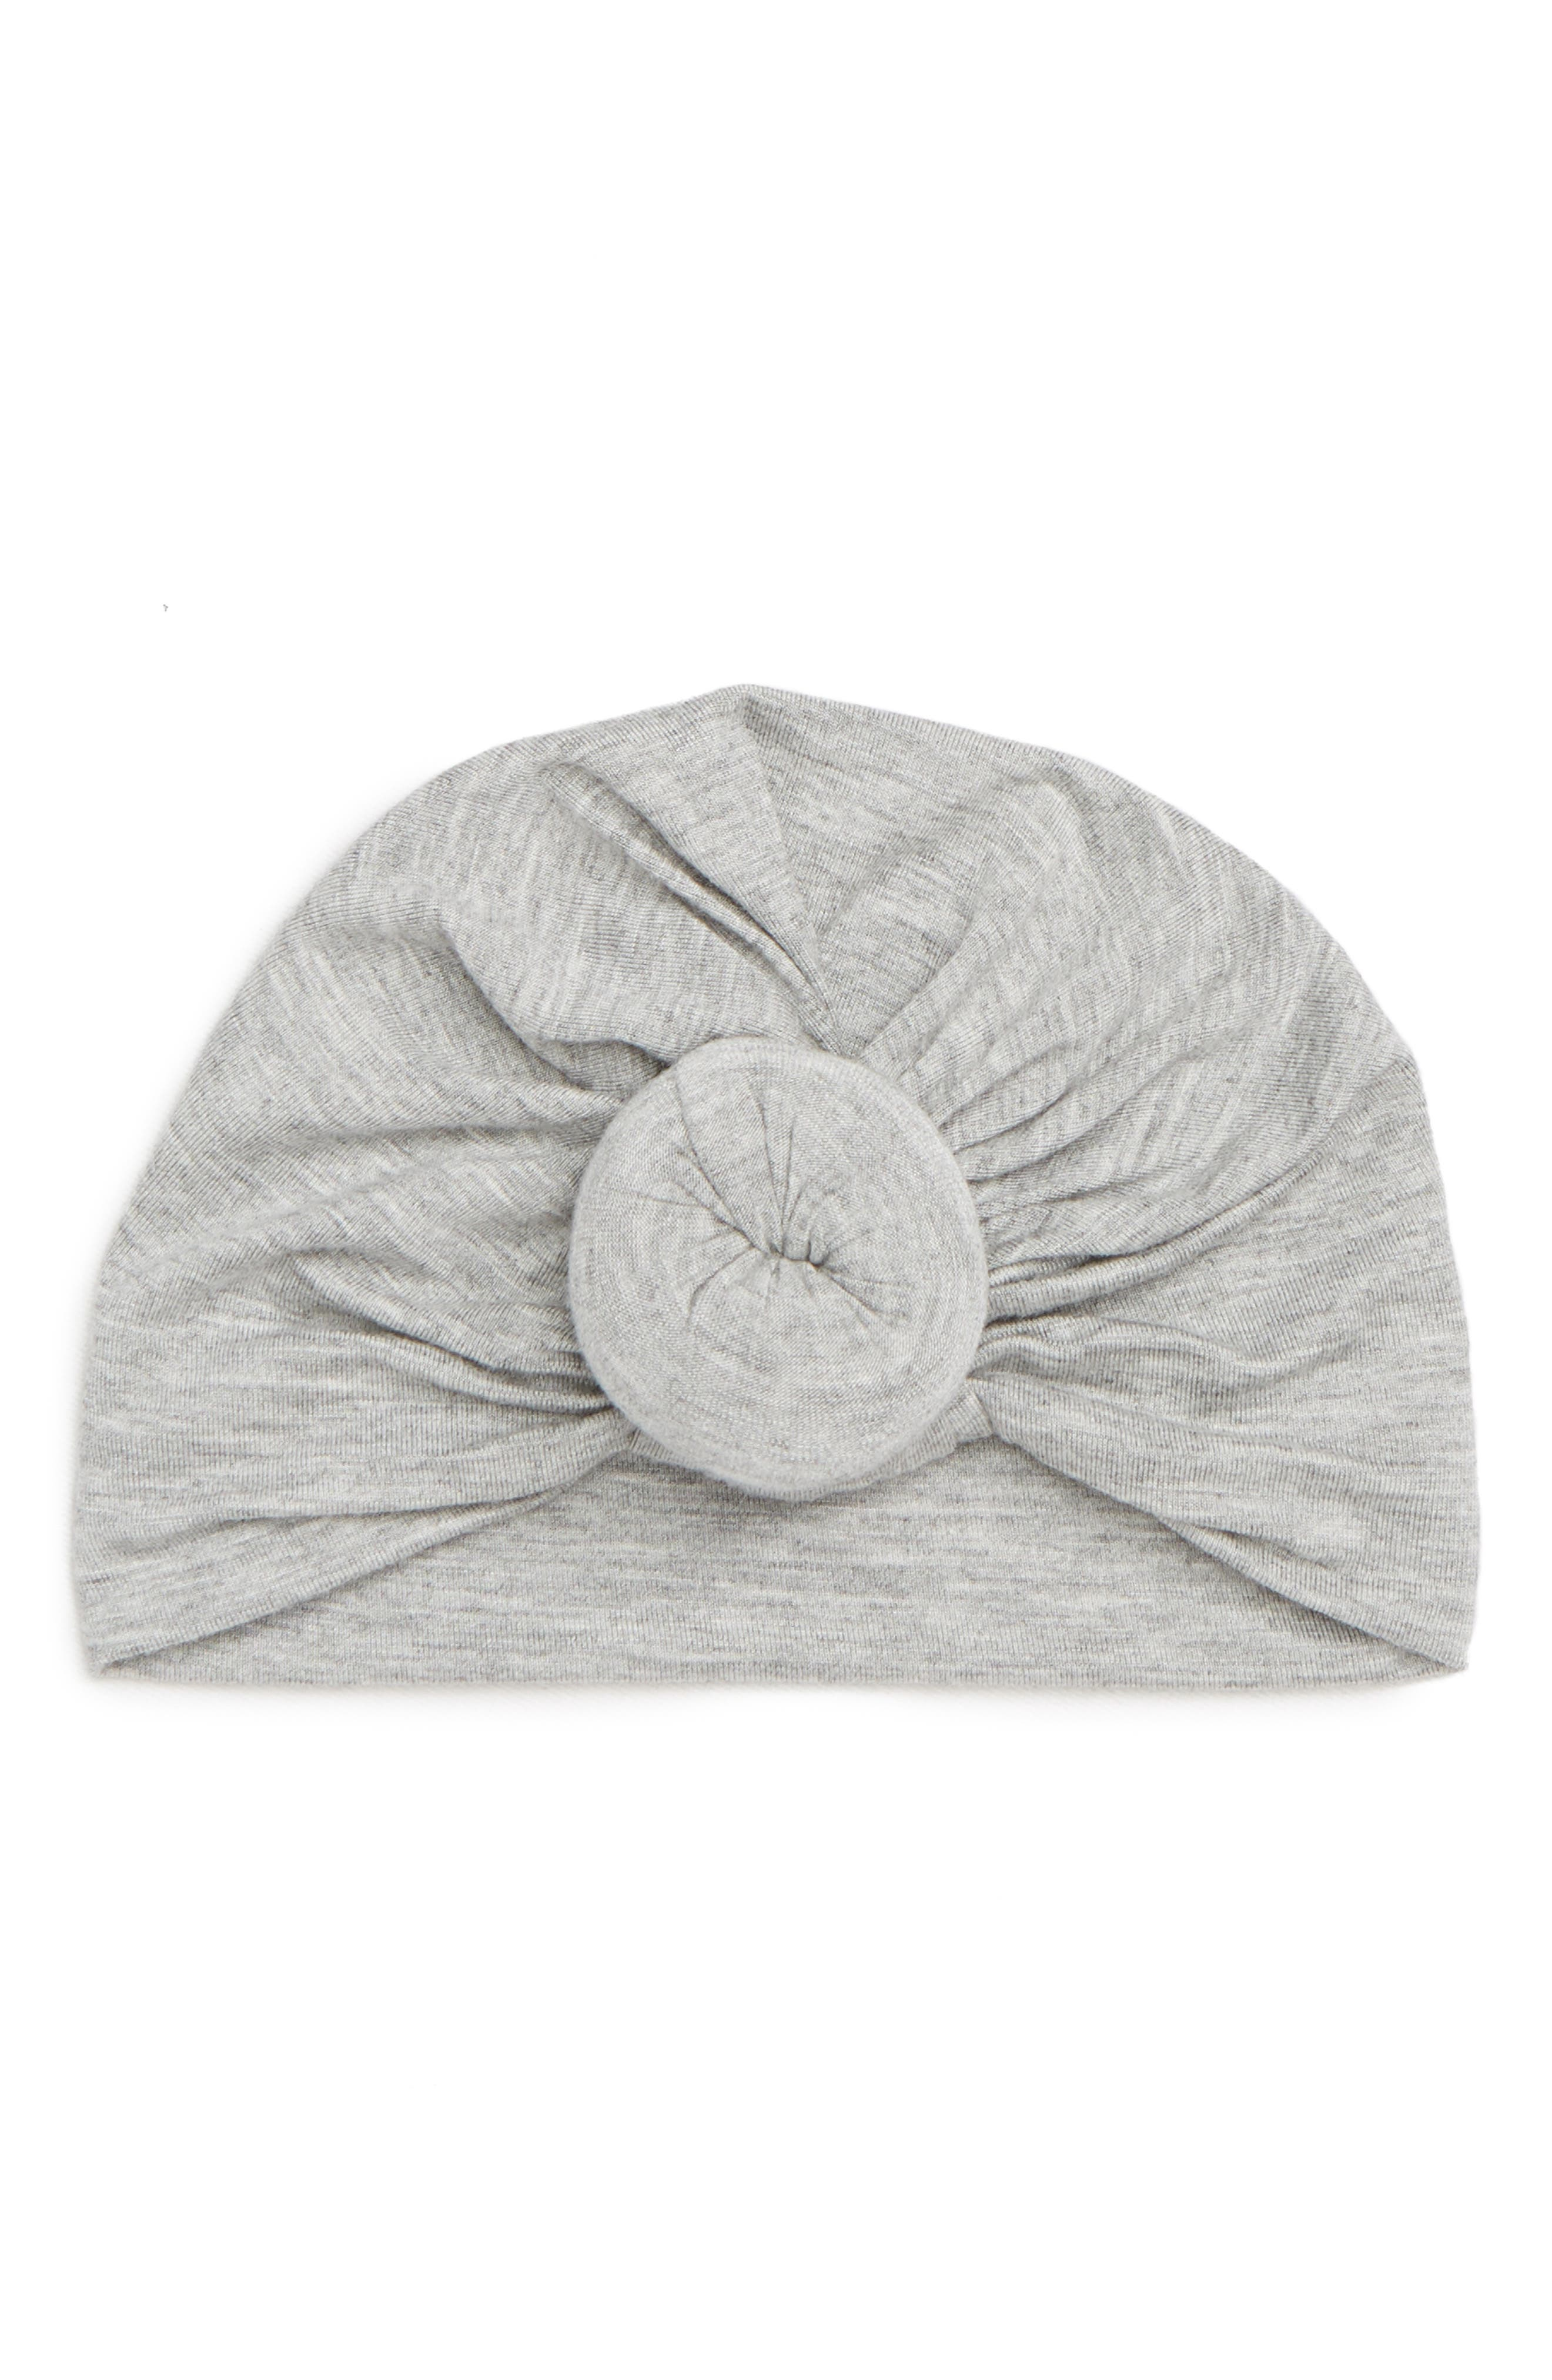 Tur-Bun Beanie,                         Main,                         color, 020